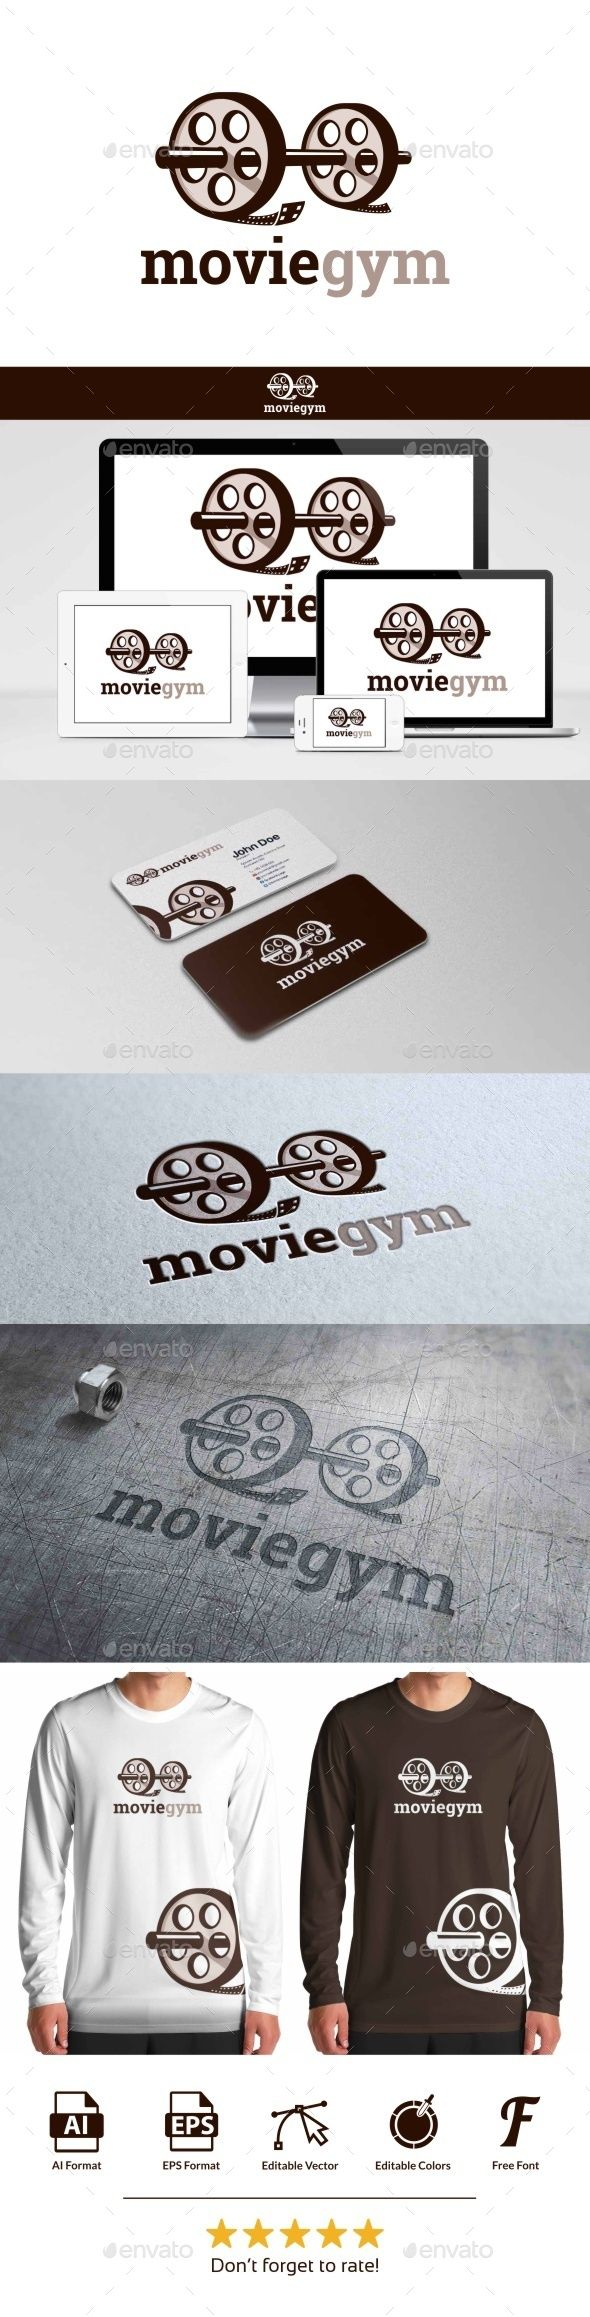 Movie Gym  - Logo Design Template Vector #logotype Download it here: http://graphicriver.net/item/movie-gym-logo/9796622?s_rank=1503?ref=nexion